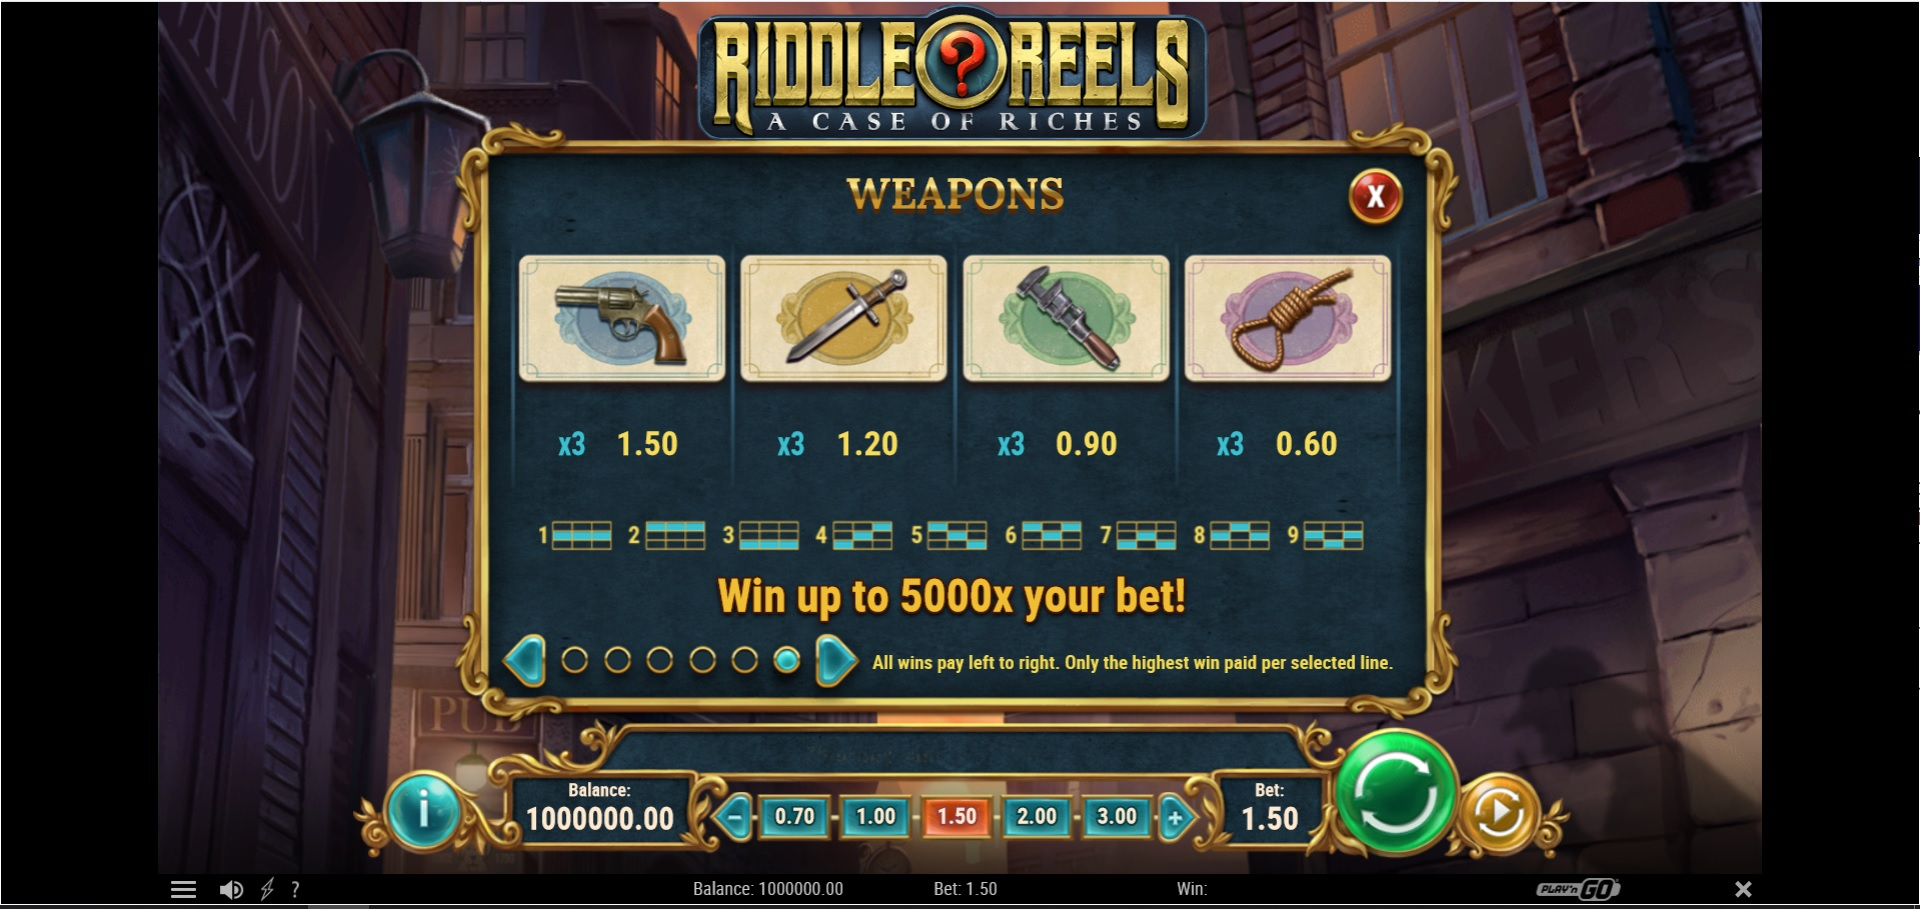 Riddle Reels Paytable